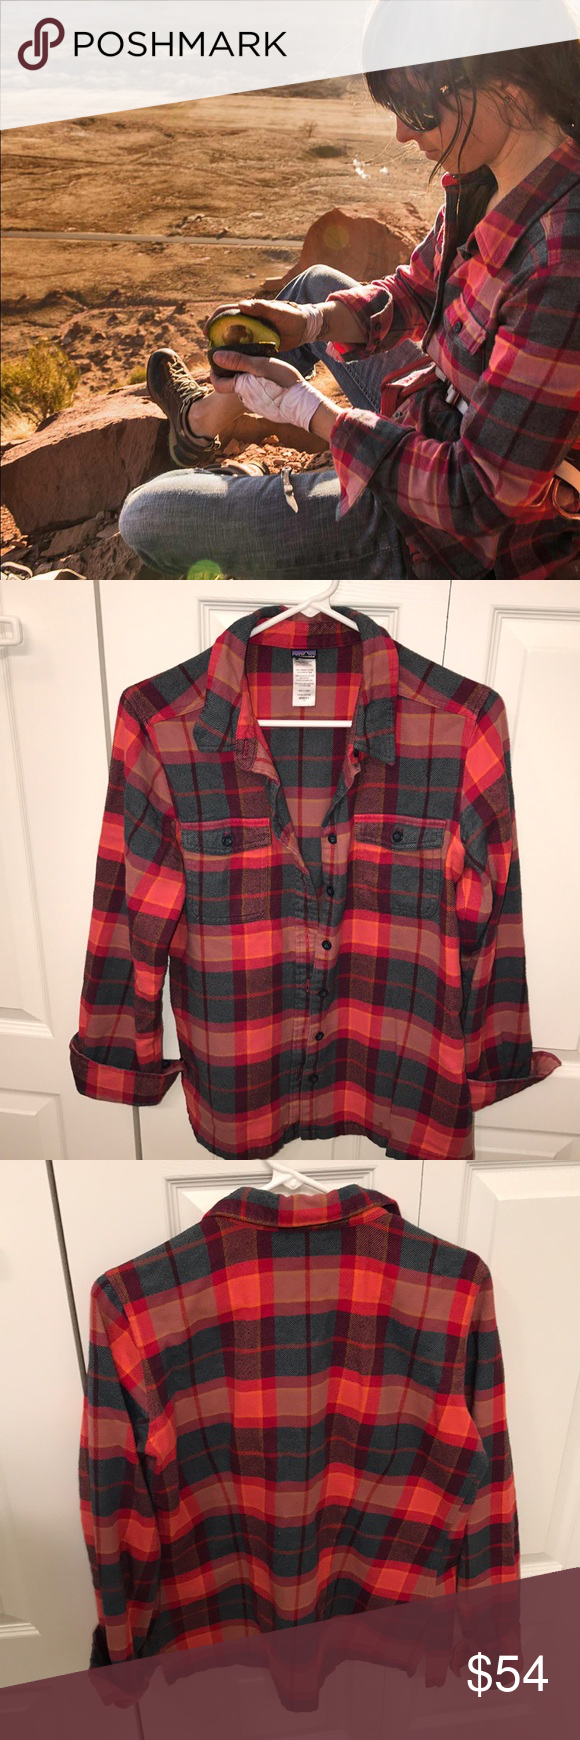 Flannel jacket with fur inside  Patagonia Fjord Flannel Shirt Red Blue Sz  med  Fit pit